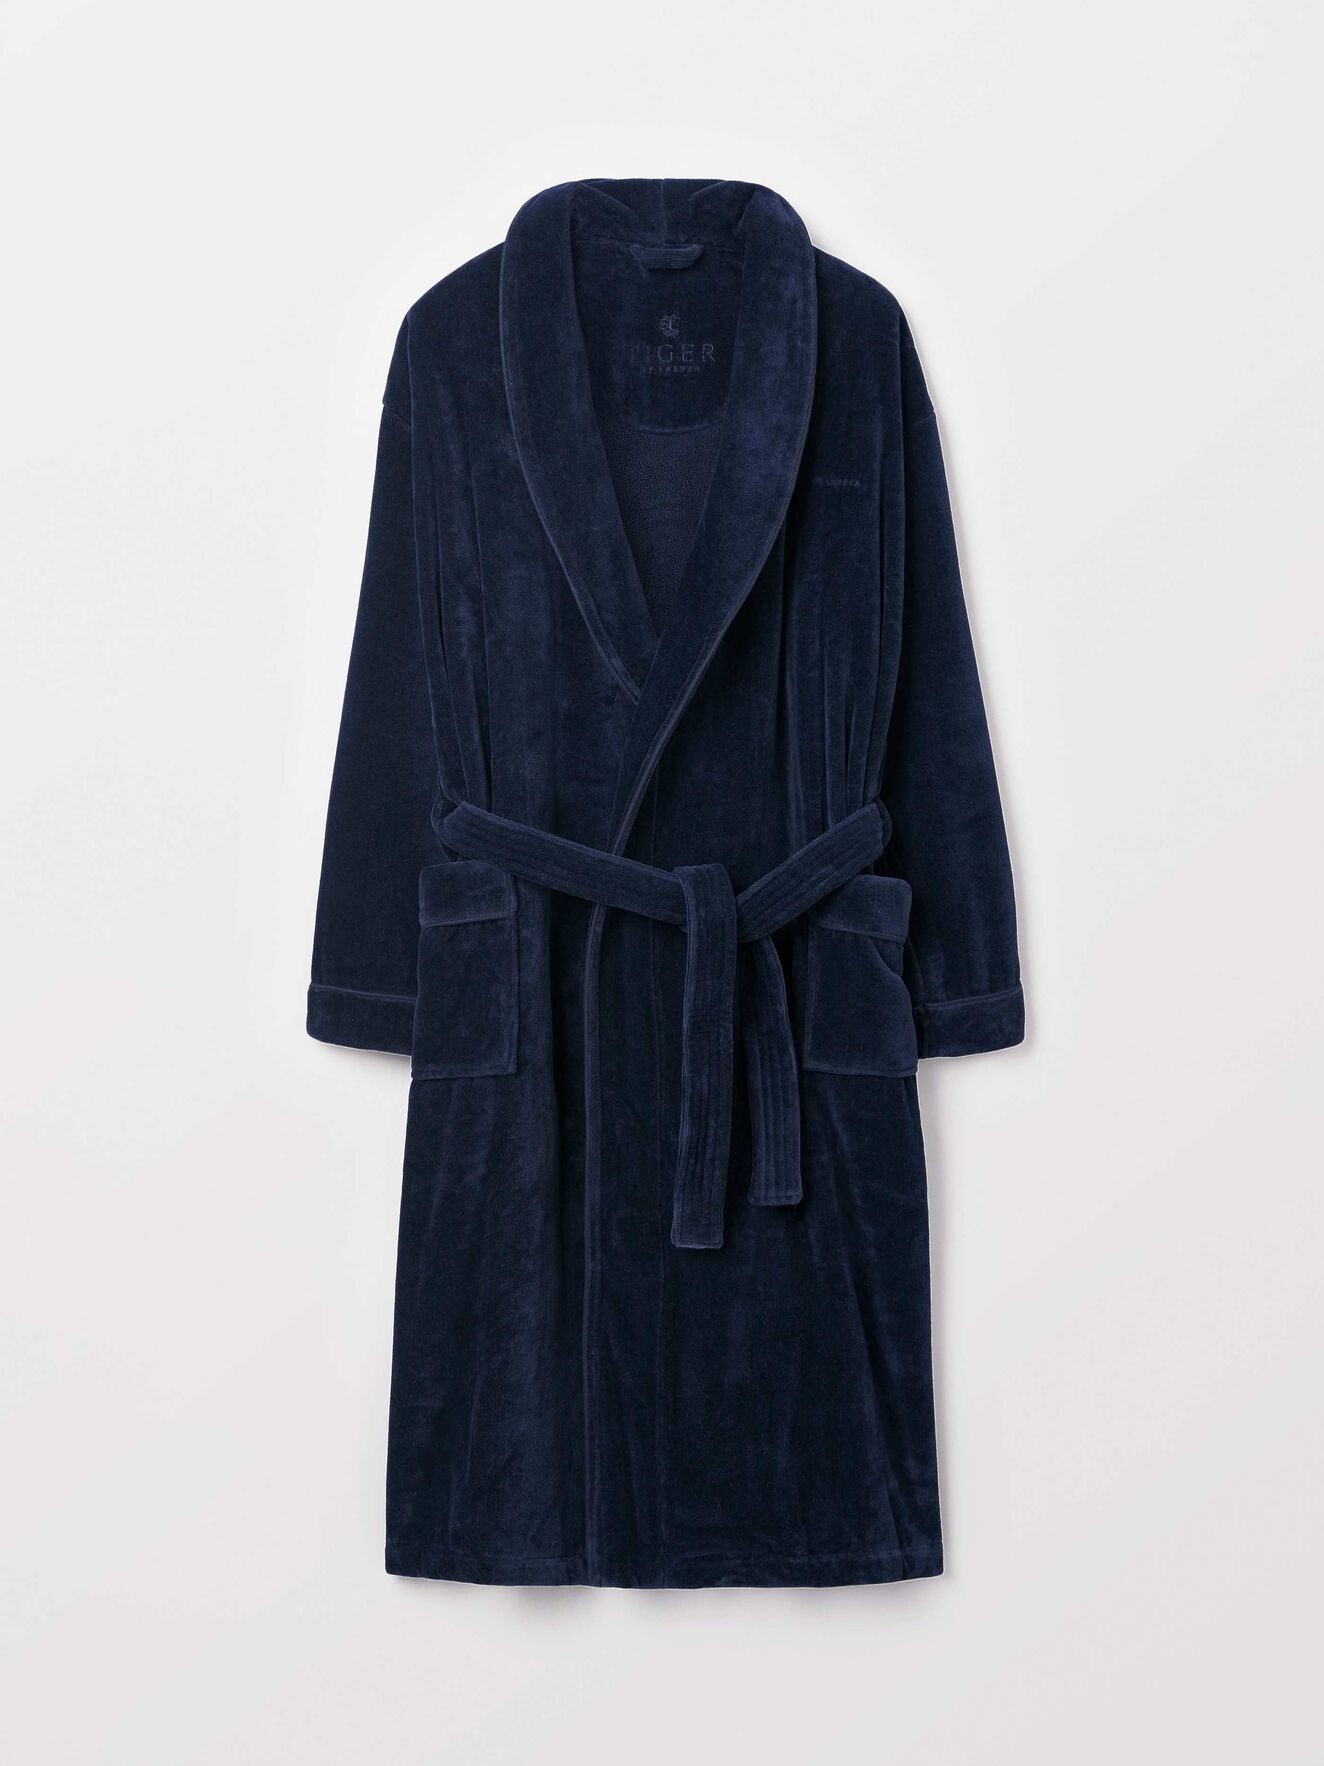 Remo Bathrobe in Sky Captain from Tiger of Sweden